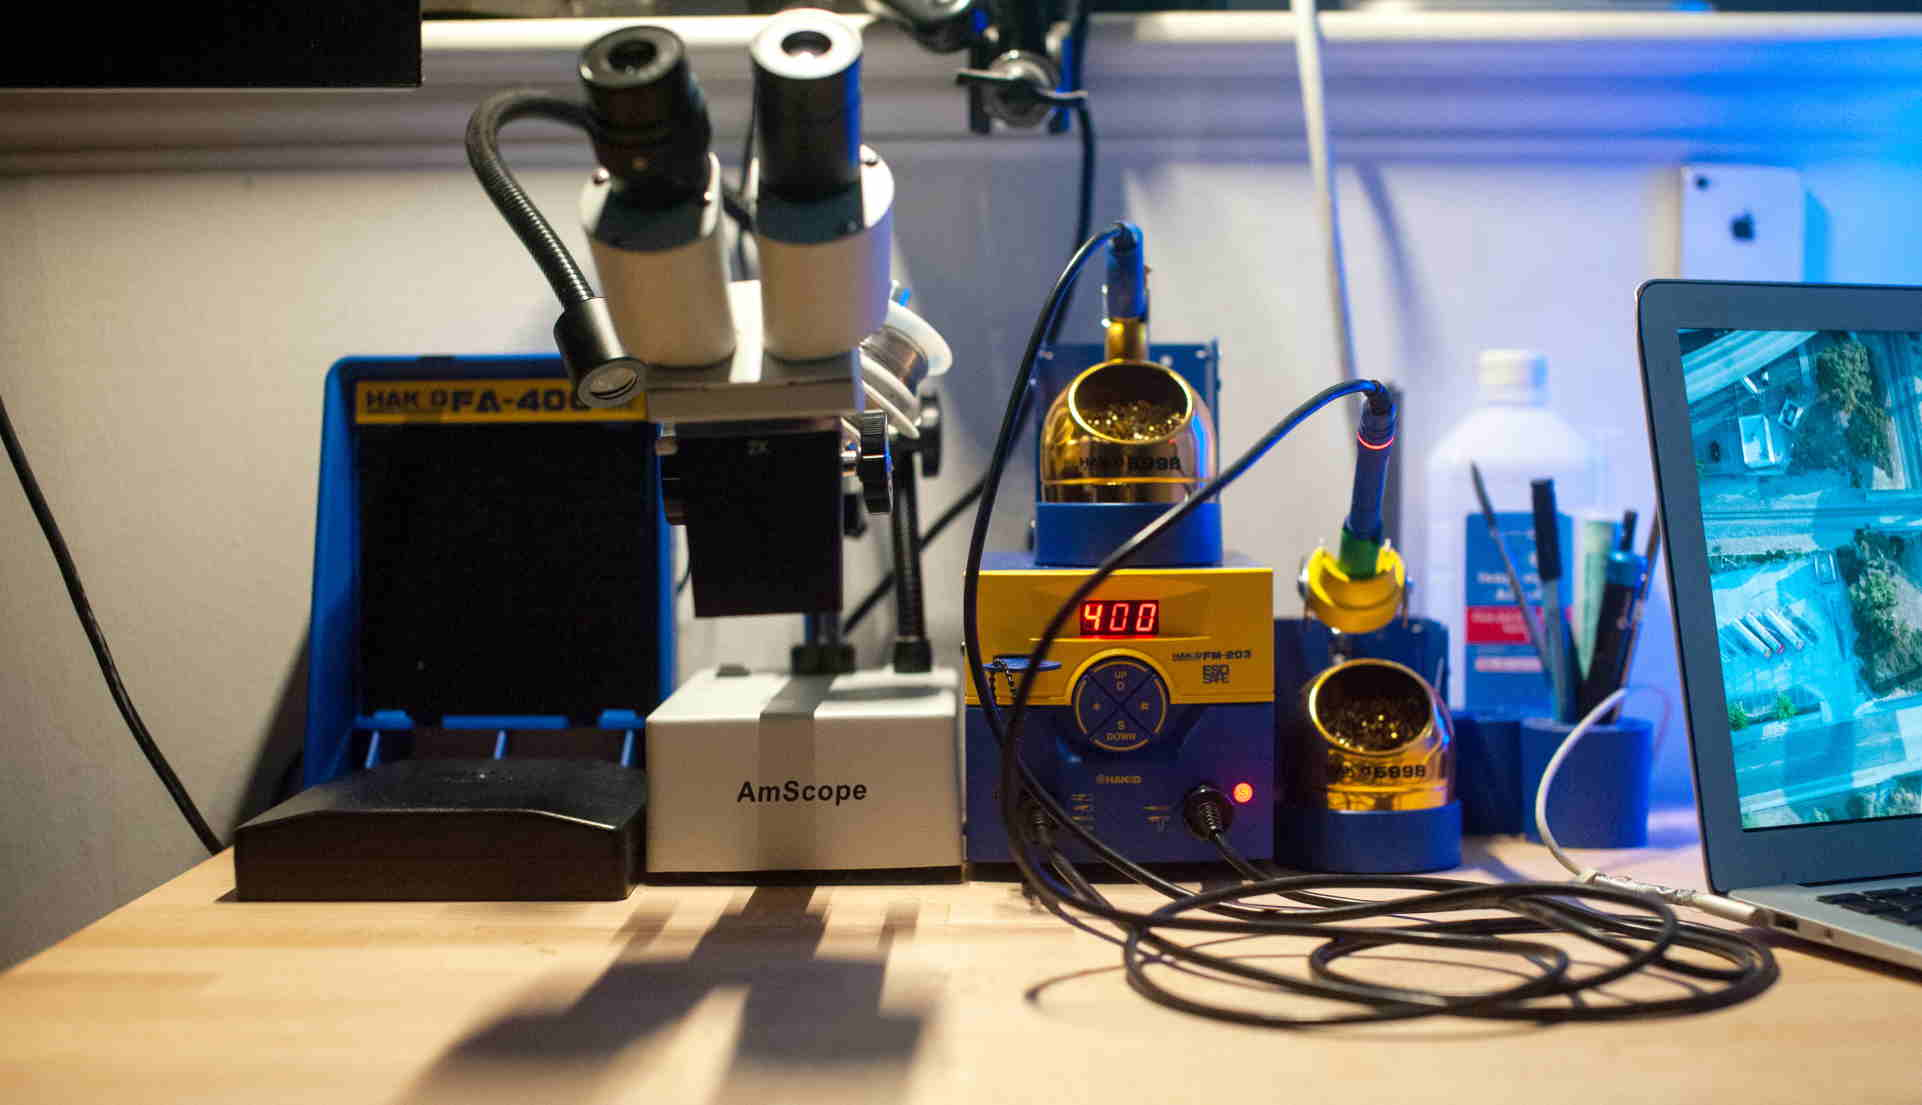 The soldering iron and microscope in Moses Buckwalter's workstation